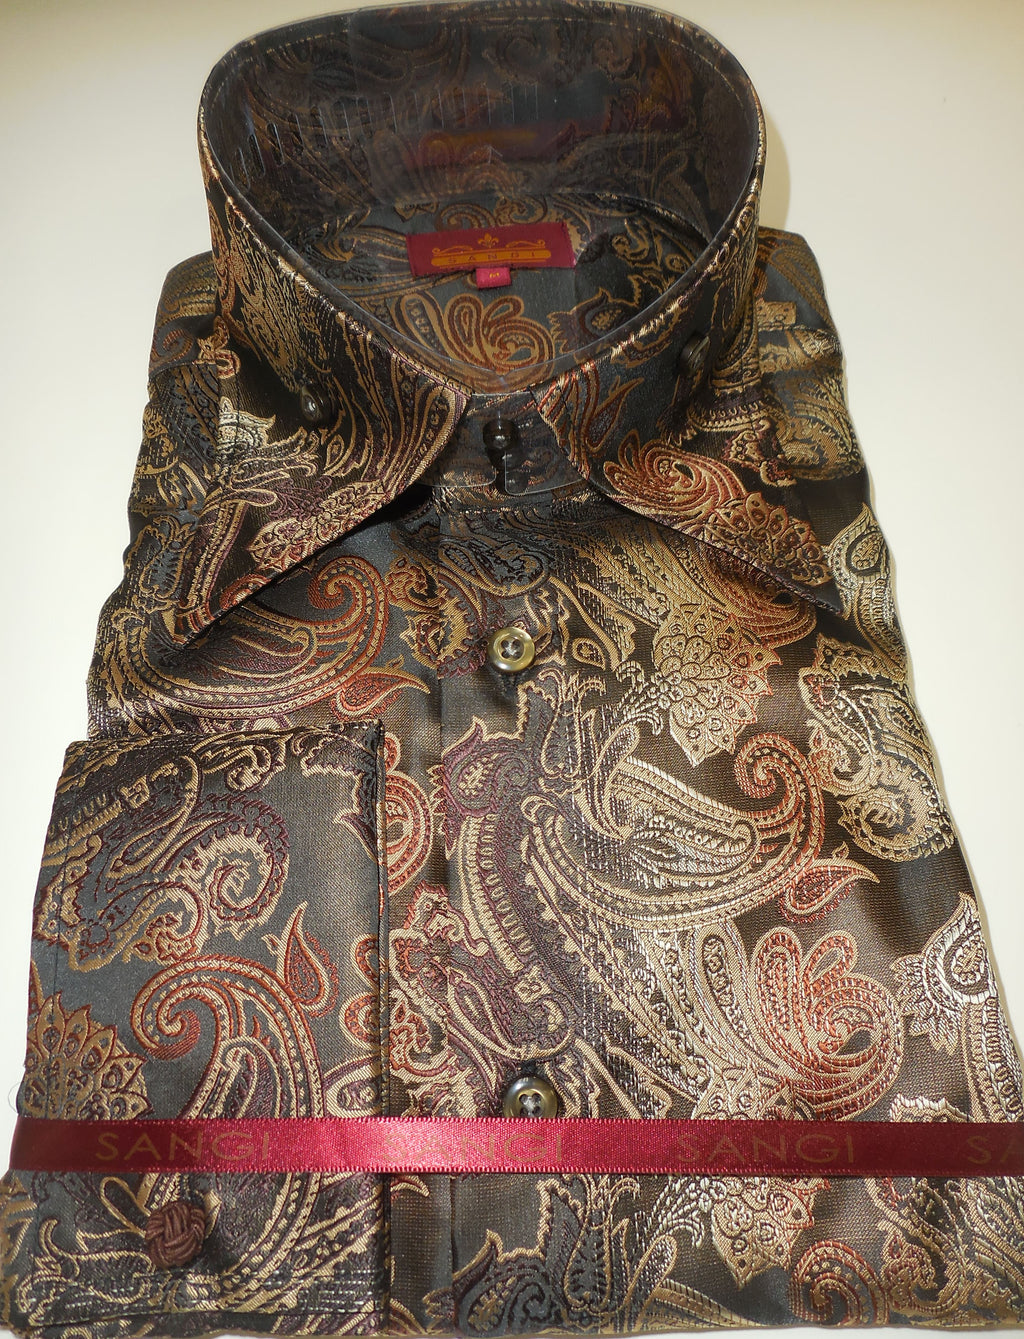 Mens Chocolate Paisley High Collar Jacquard Shirt SANGI ROME COLLECTION # 2014